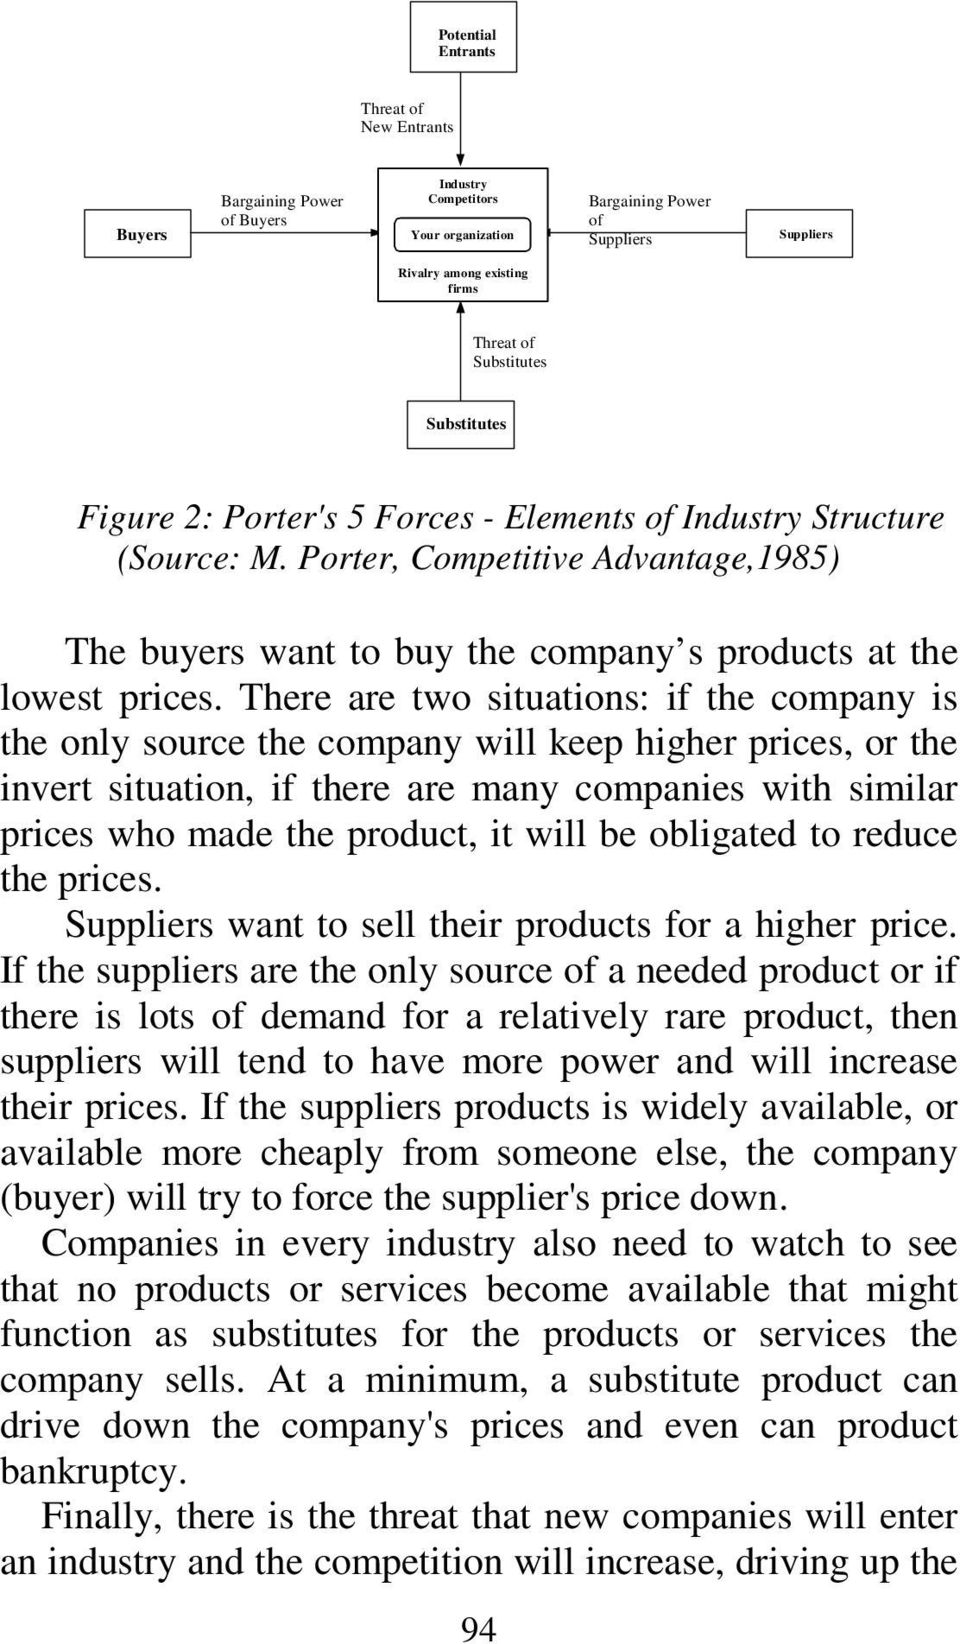 There are two situations: if the company is the only source the company will keep higher prices, or the invert situation, if there are many companies with similar prices who made the product, it will